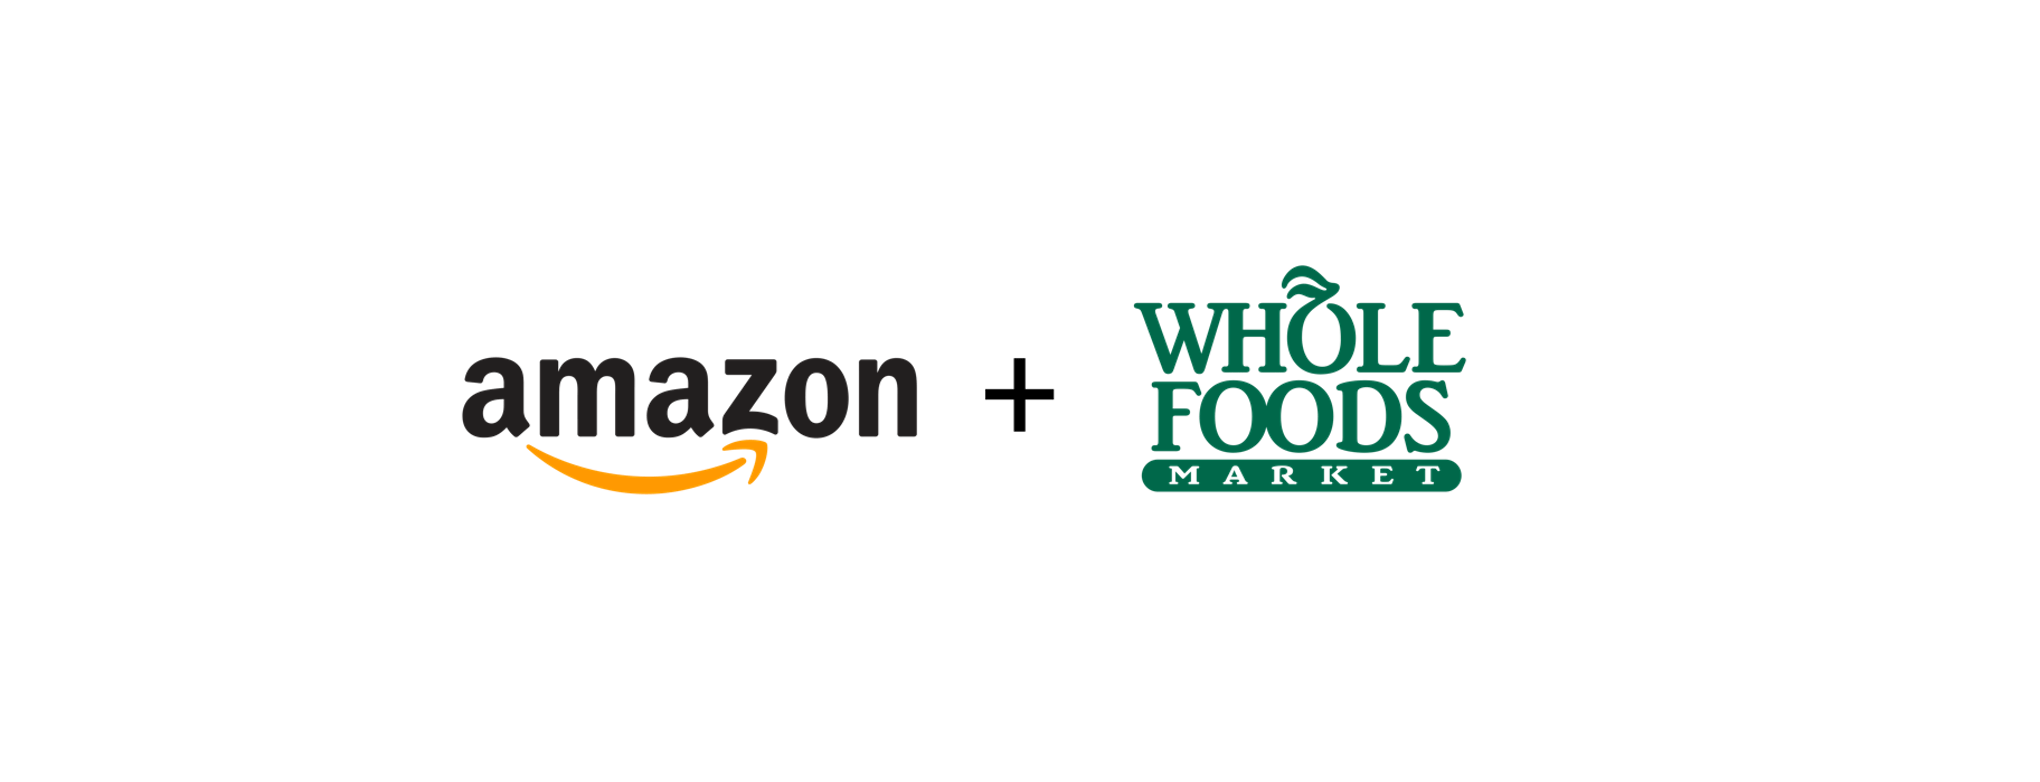 Amazon Whole Foods Amazon And Whole Foods Michael Davies Weighs In On Wgbh